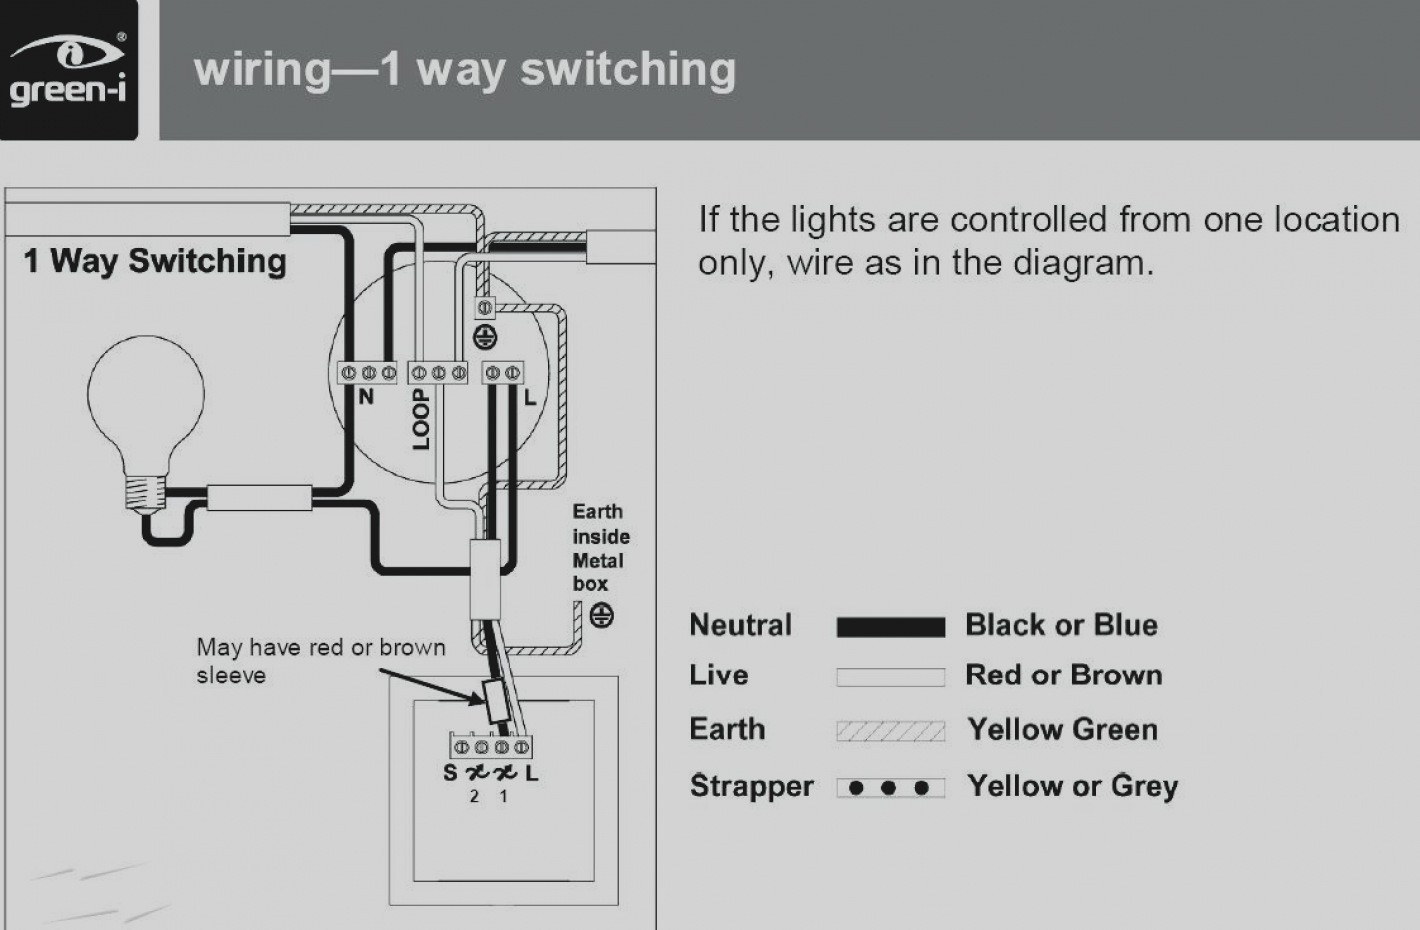 hight resolution of leviton double 3 way switch wiring diagram wiring library leviton decora 3 way switch wiring diagram 5603